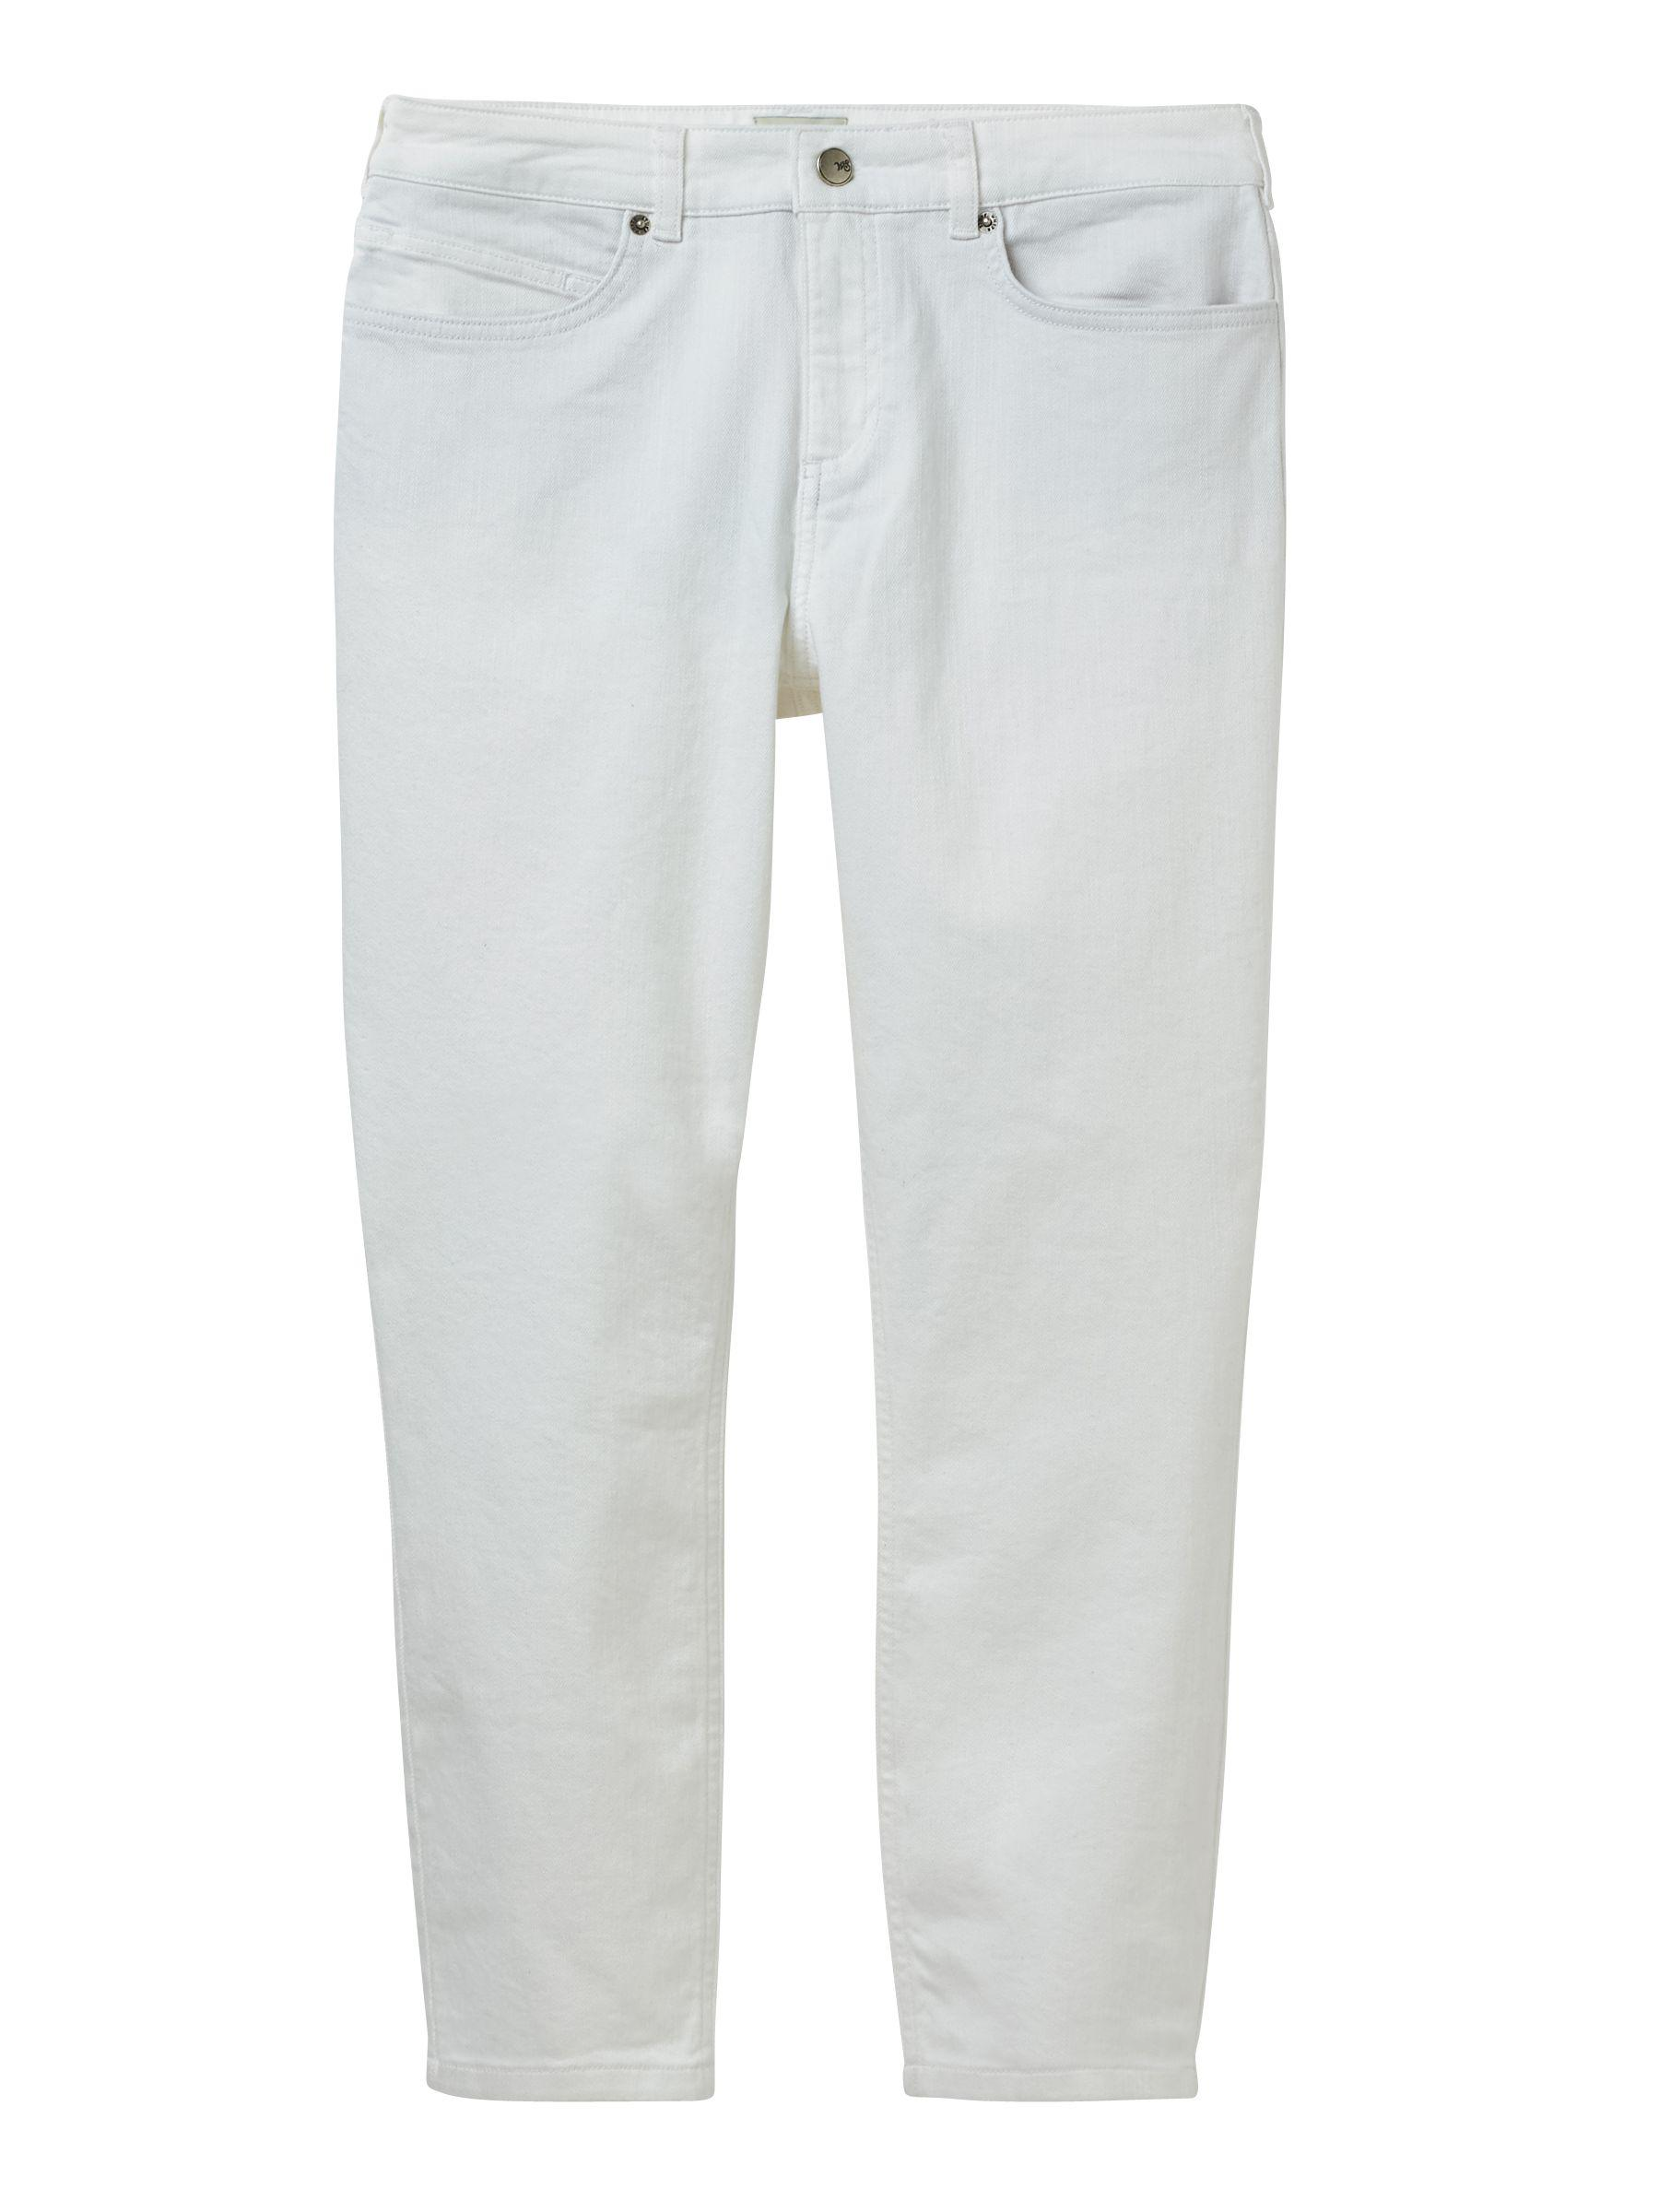 Ash White Lyst Jeans Straight Save Stuff Crop 0 In 32 wPCqOP